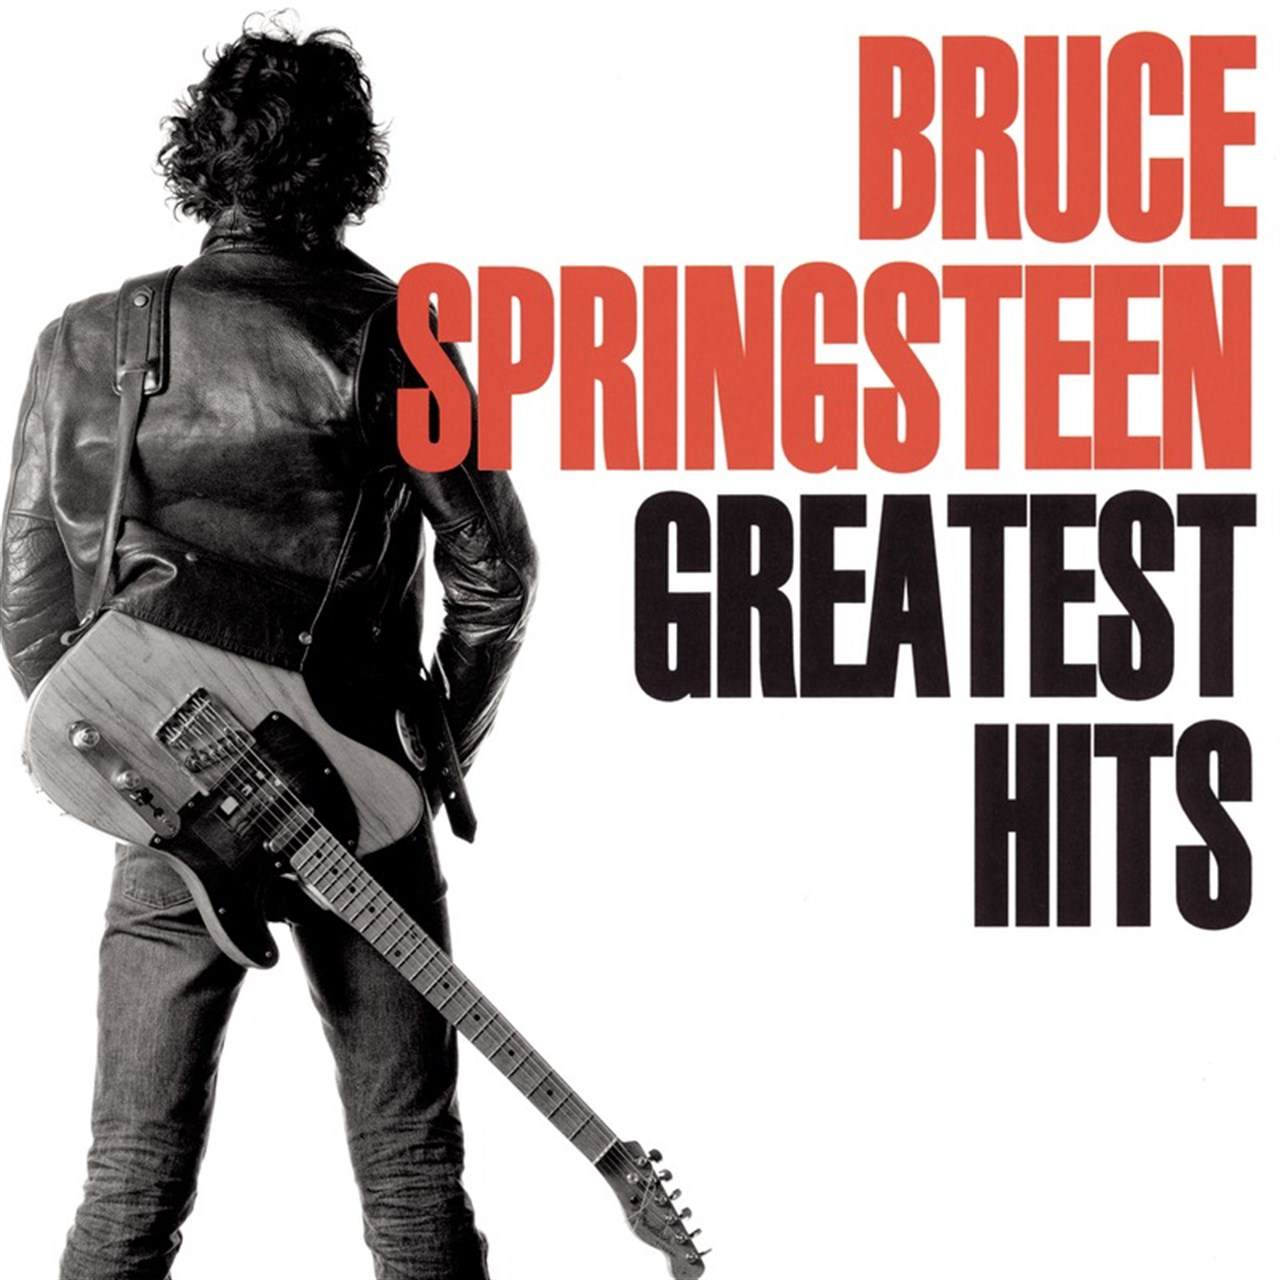 Bruce Springsteen Bruce Springsteen - Greatest Hits (2 LP) вангелис vangelis greatest hits 2 cd